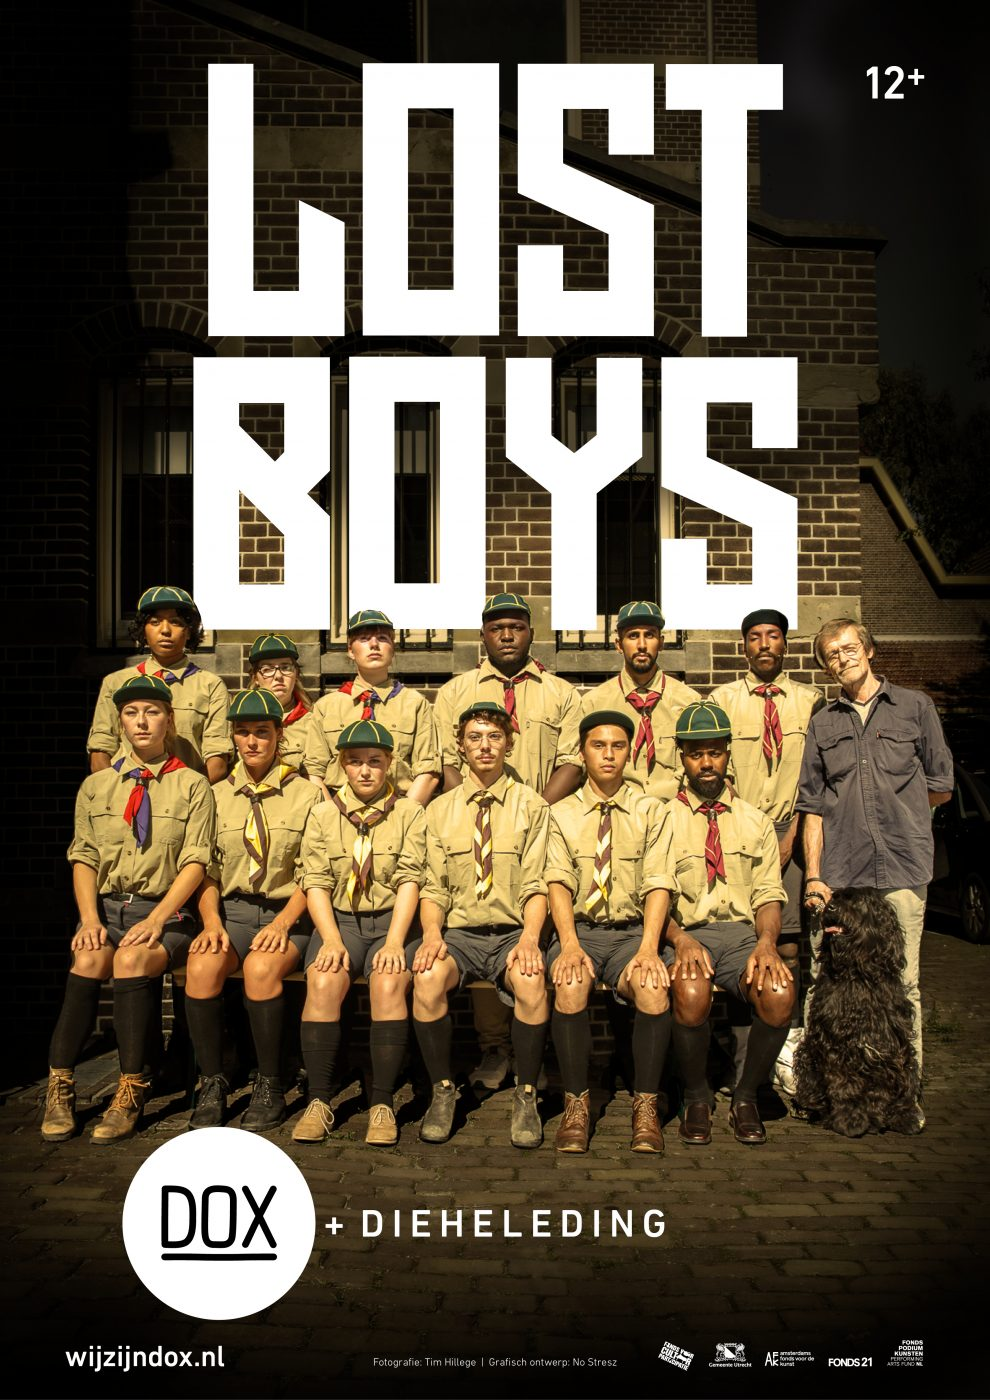 The Lost Boys - DOX & DIEHELEDING